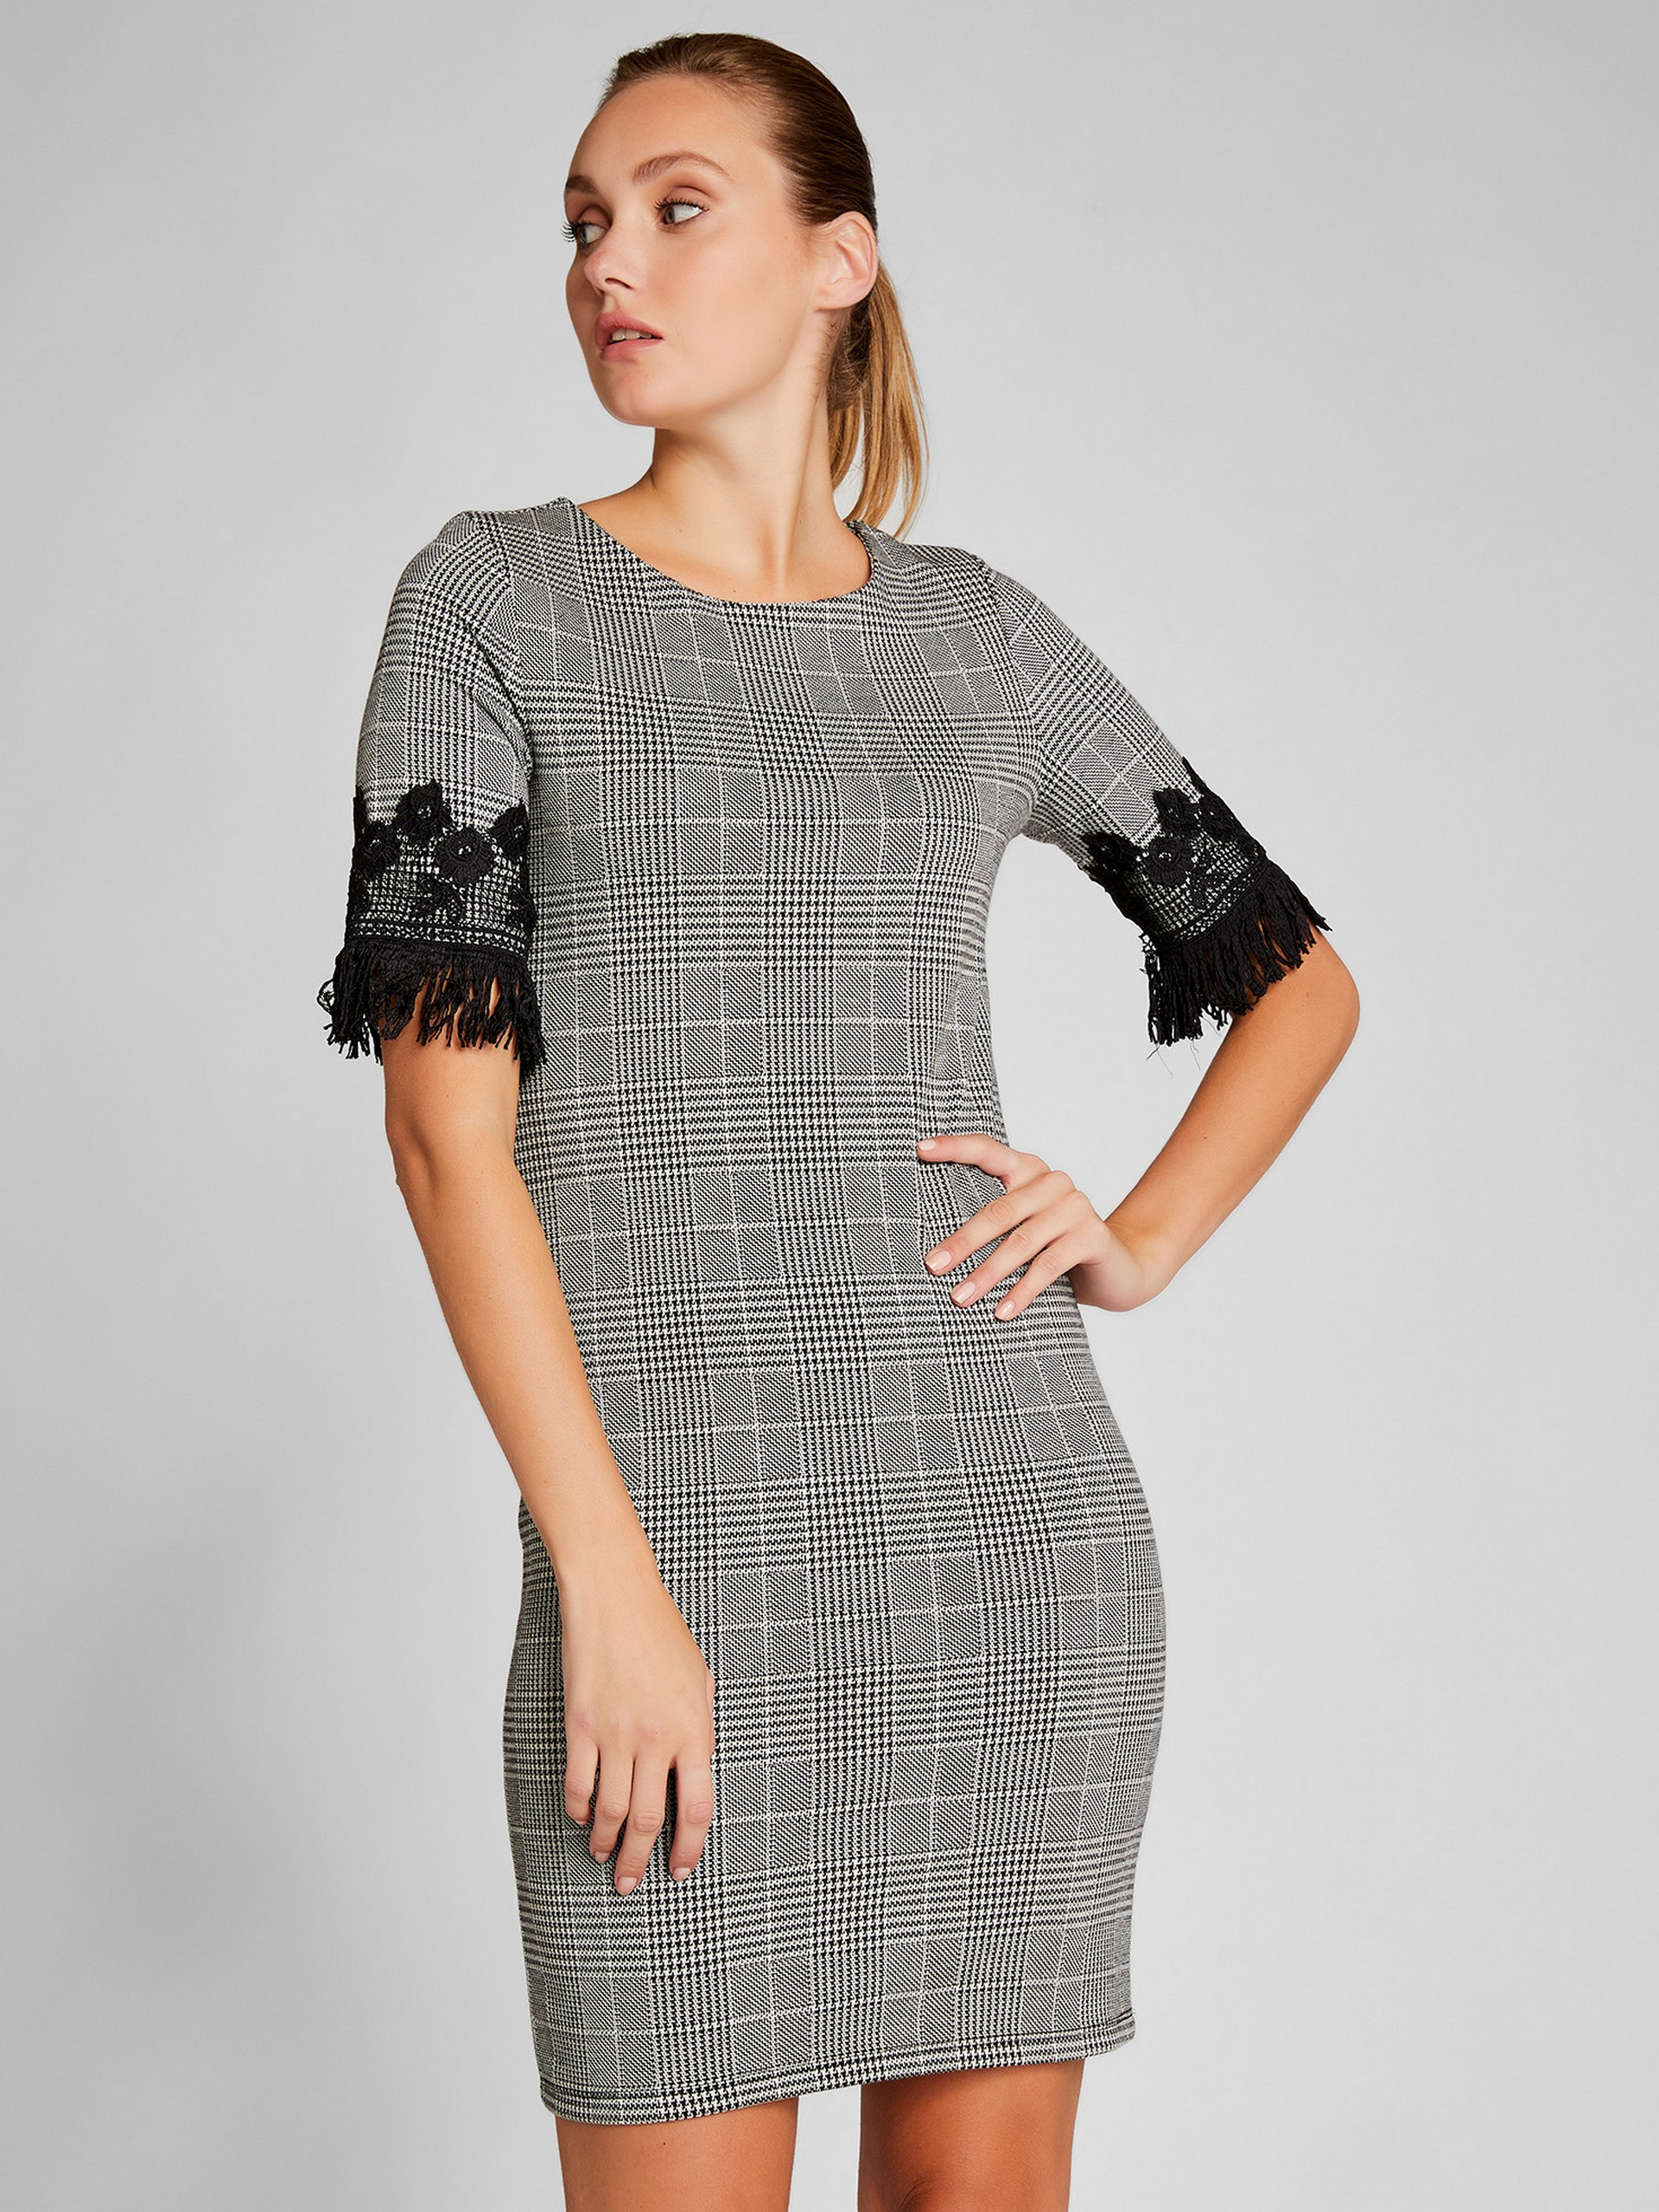 Ecosse Patterned Dress With Lace Details On The Sleeve